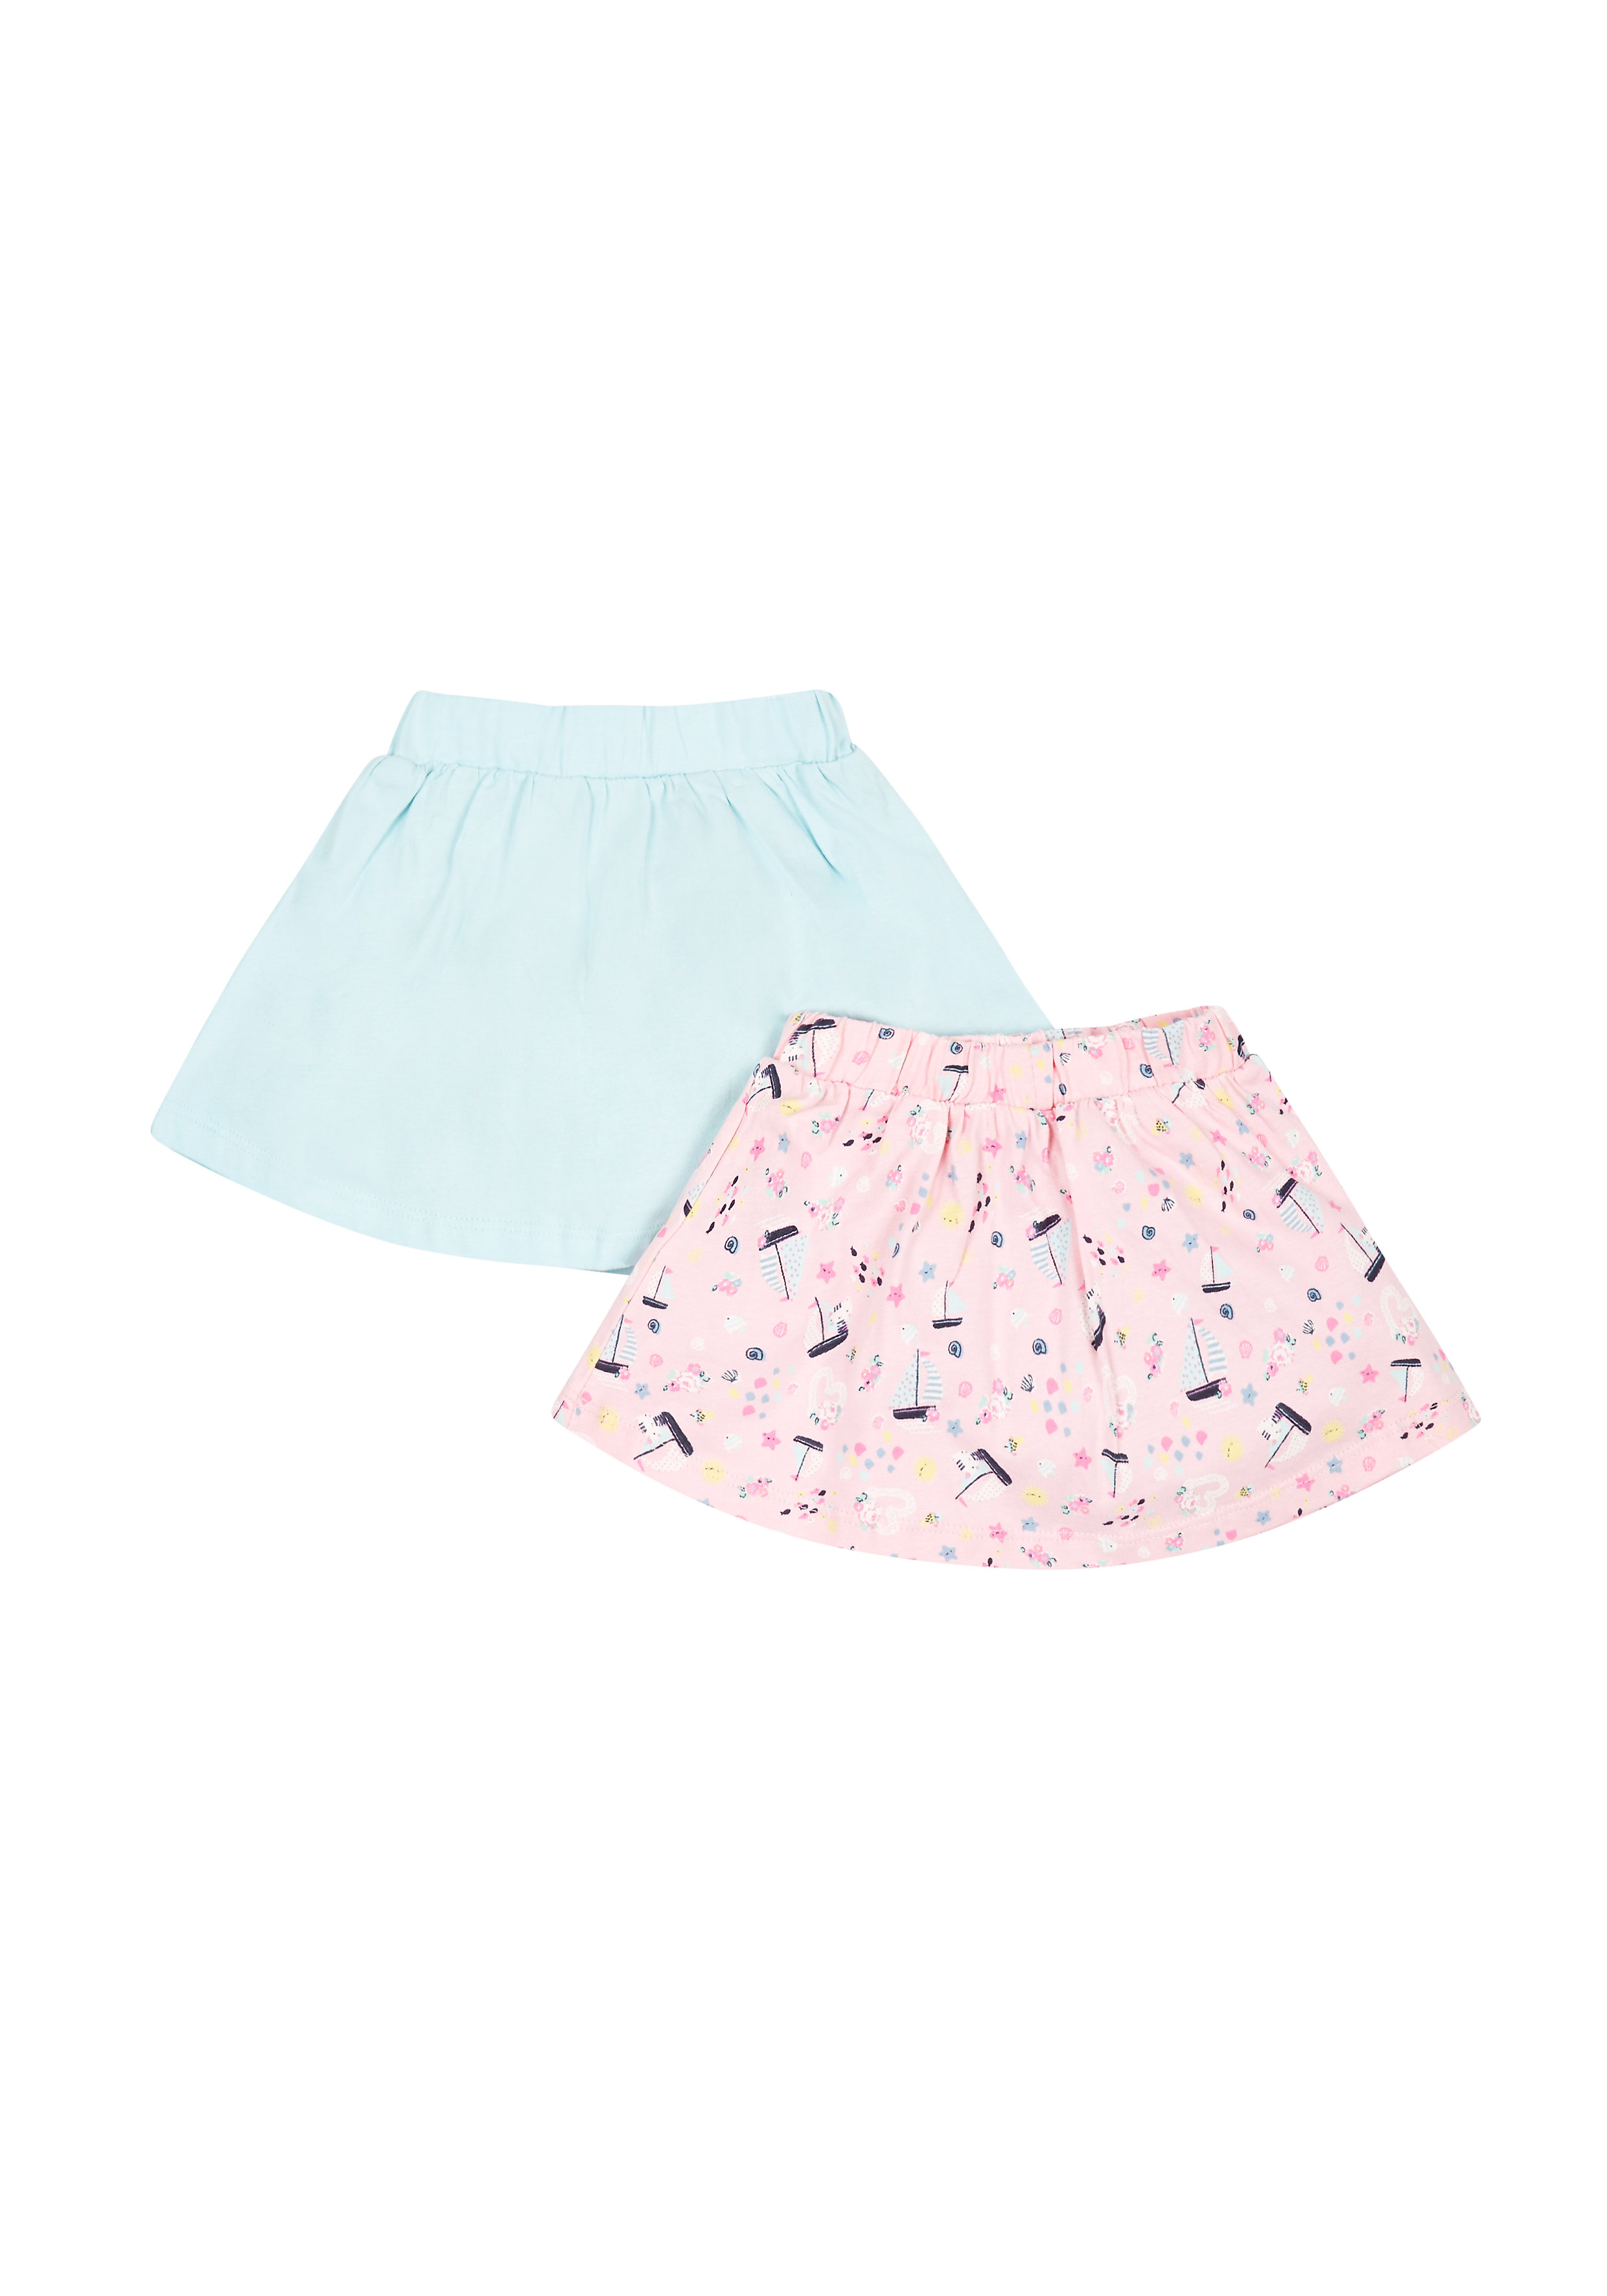 Mothercare   Girls Boat Print And Mint Skirts - 2 Pack - Pink